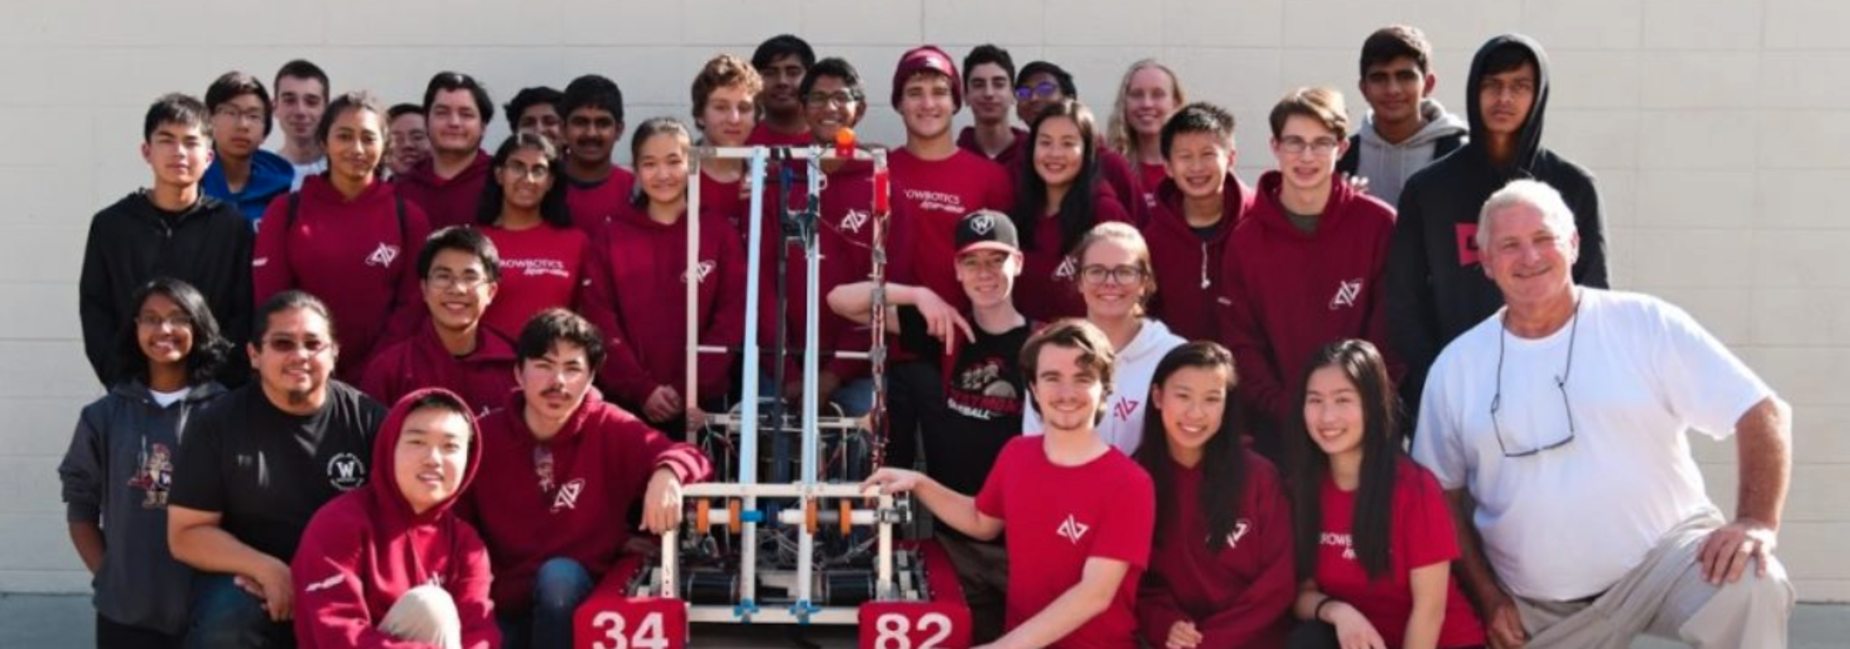 Photo of the whole Robotics Club with their robot in early spring of 2020